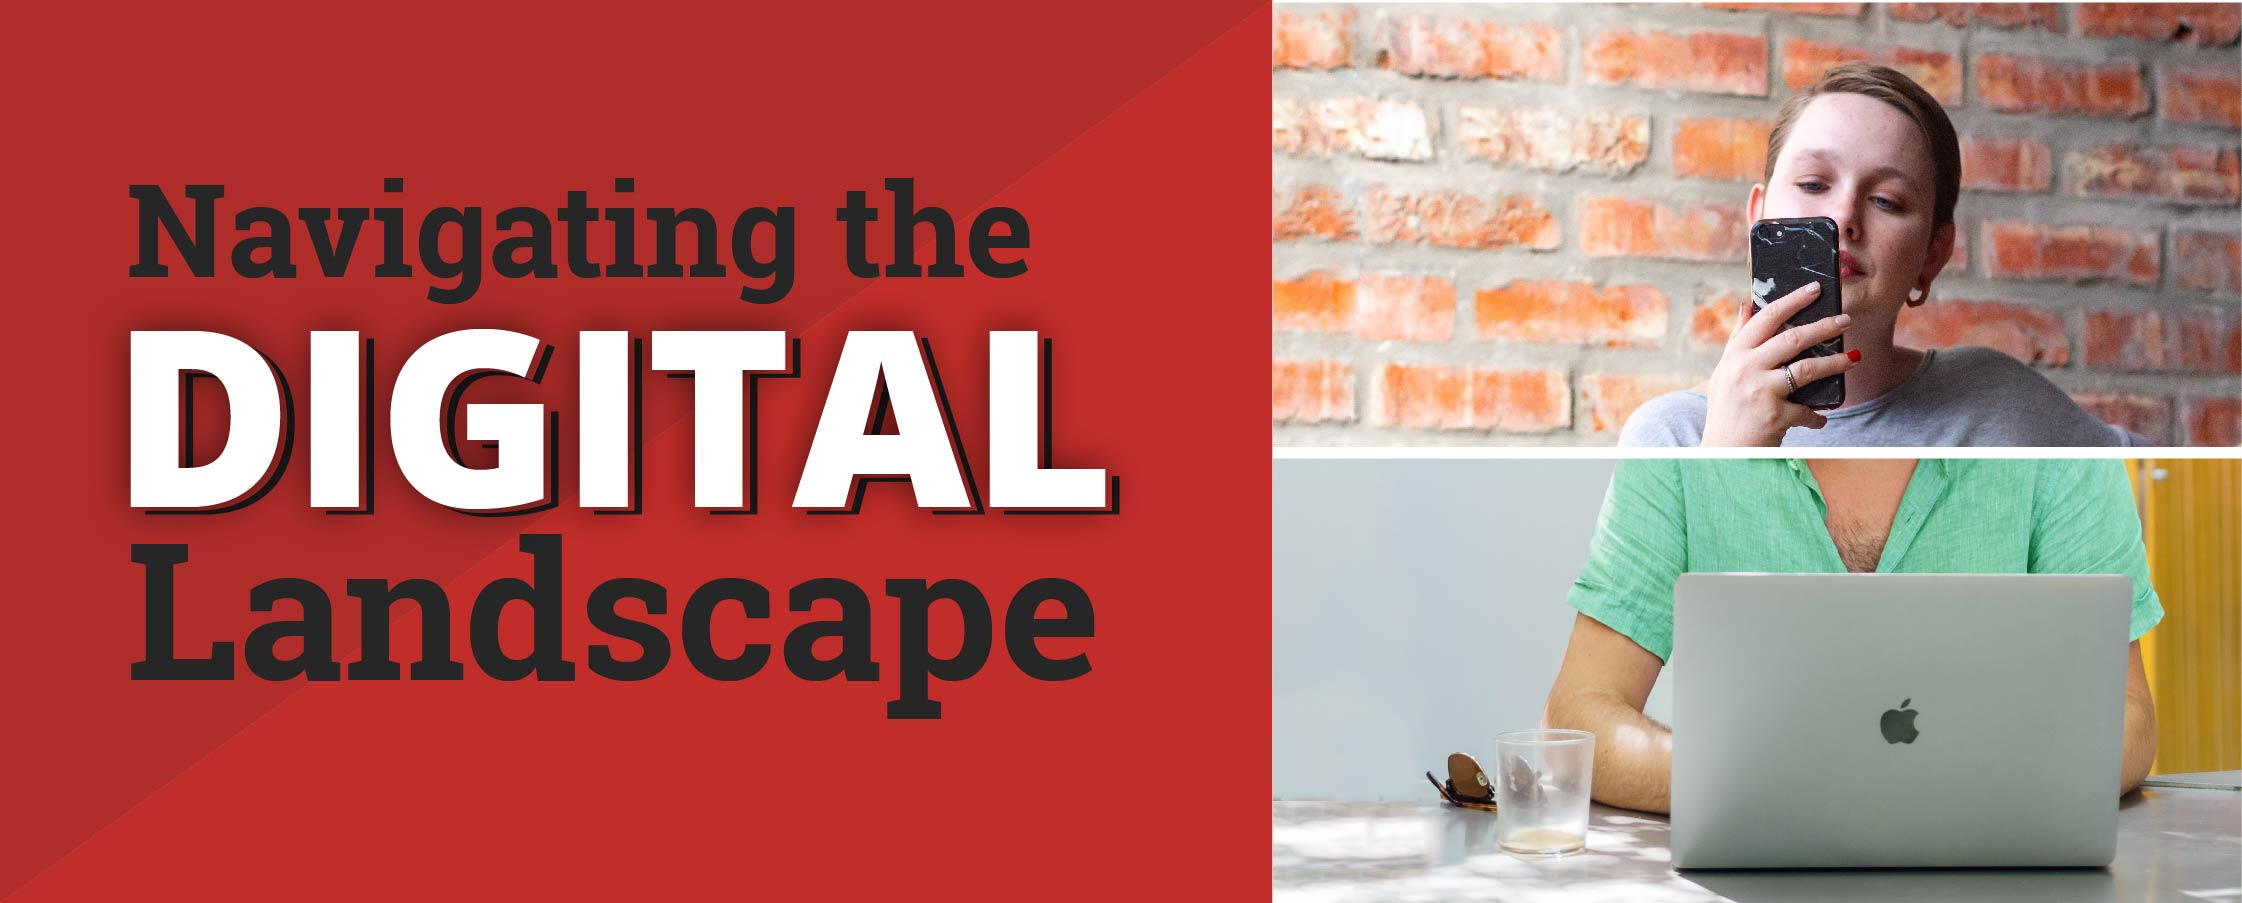 Navigating the Digital Landscape